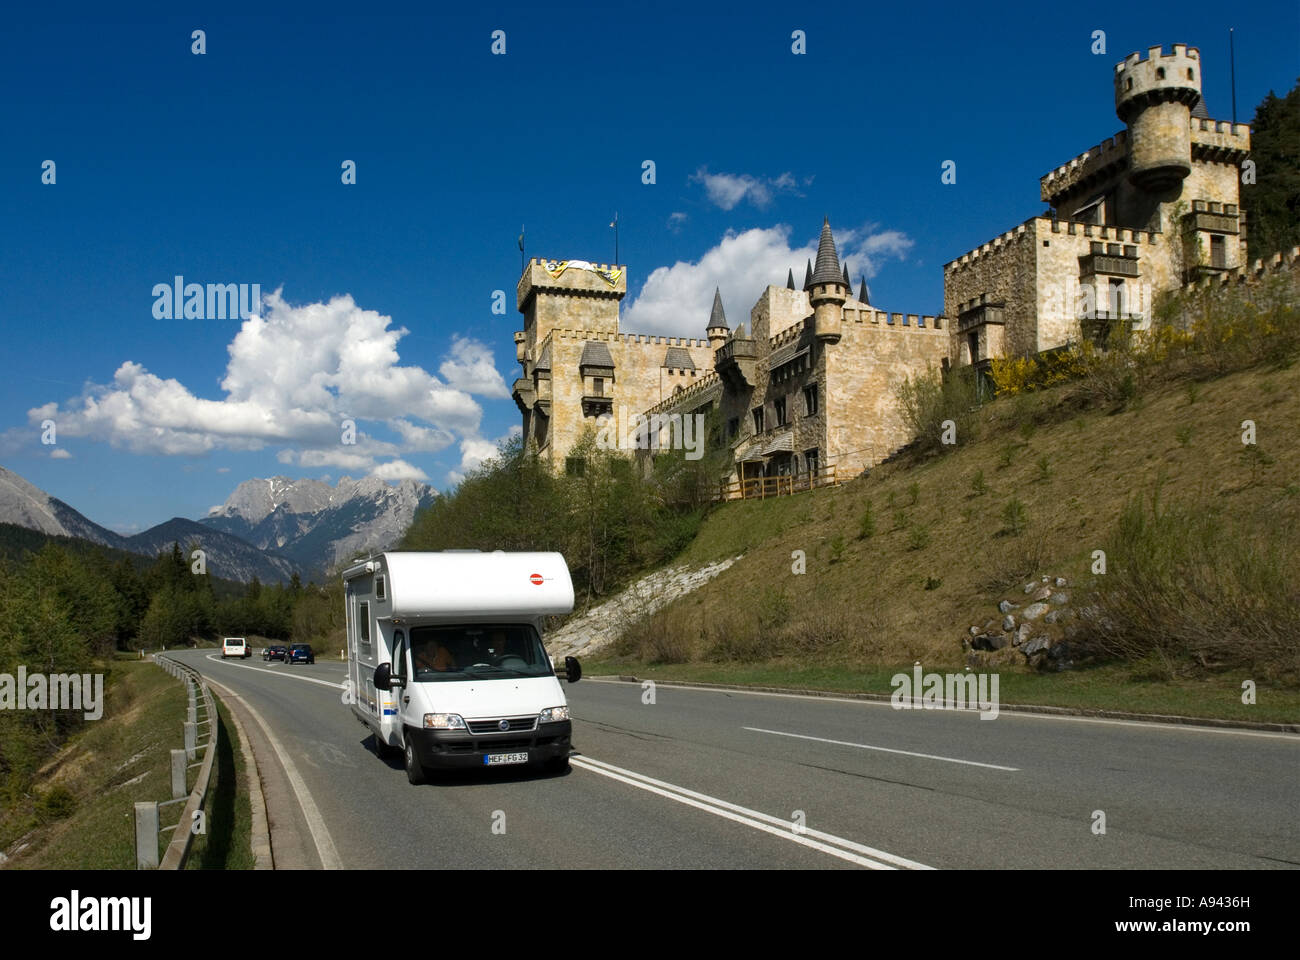 tourist attraction Playcastle Seefeld Tyrol Austria and Motorhome - Stock Image